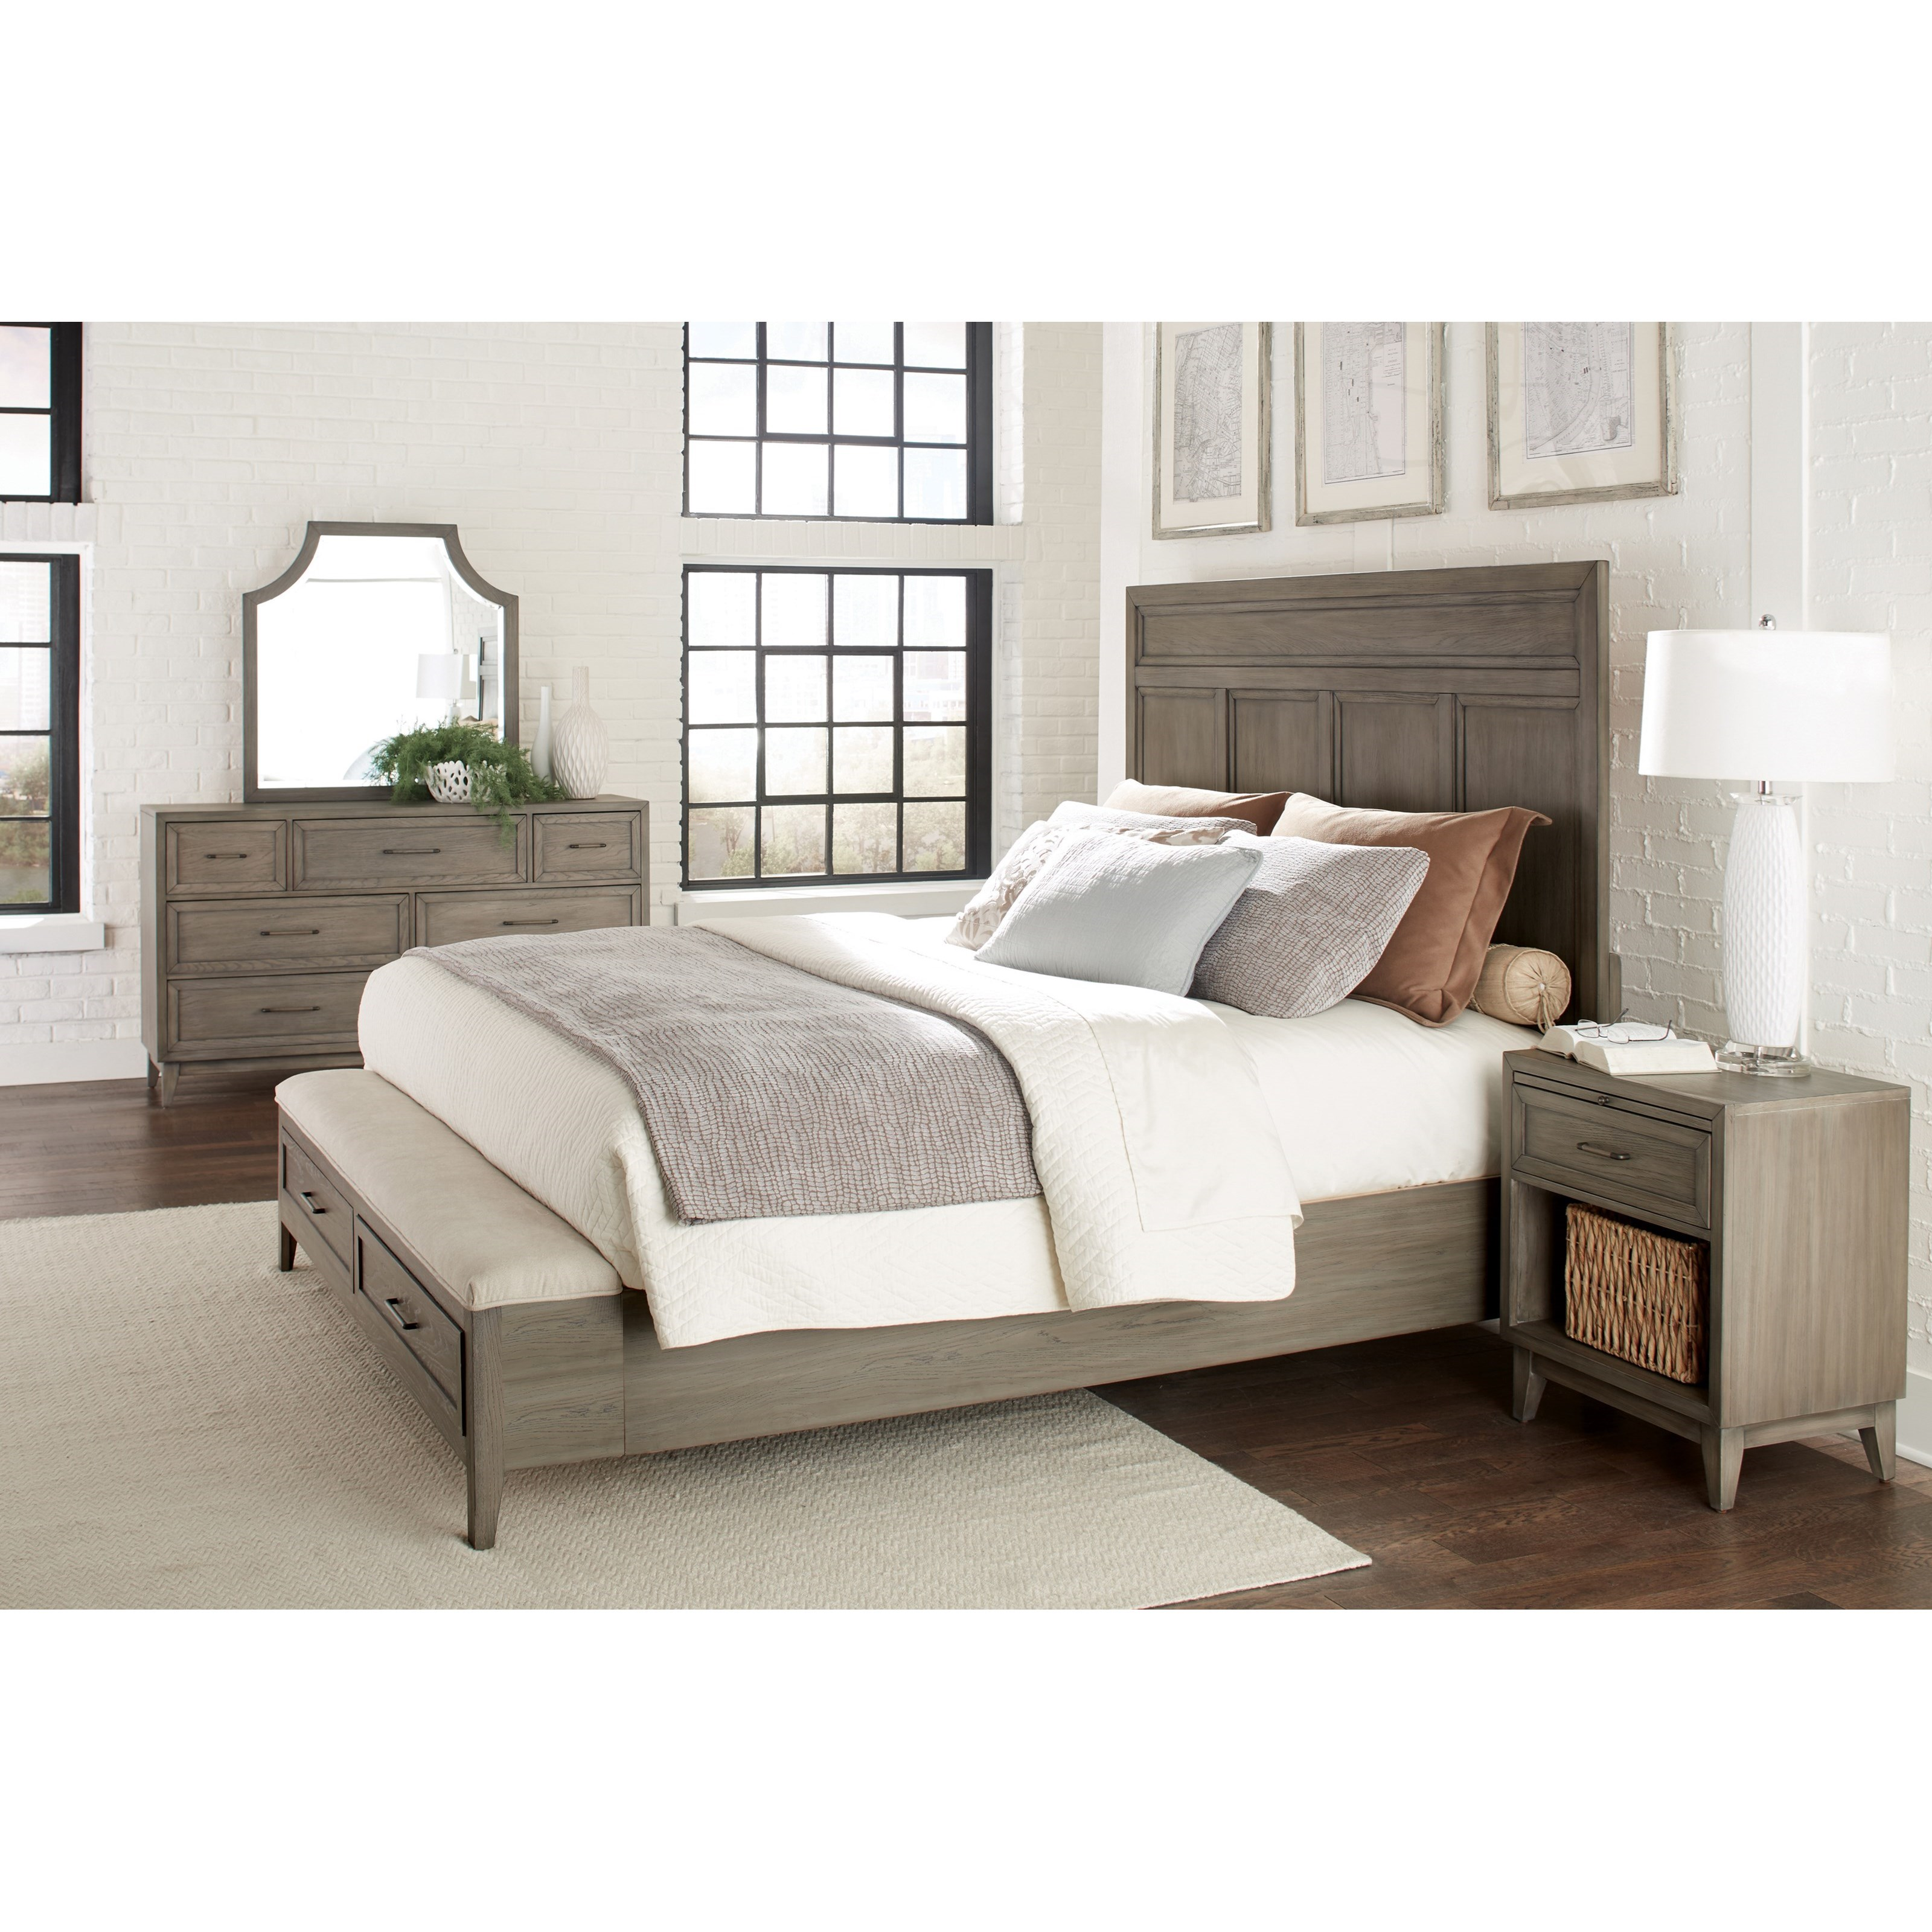 queen bed products low precision footboard number bedroom riverside furniture item with storage